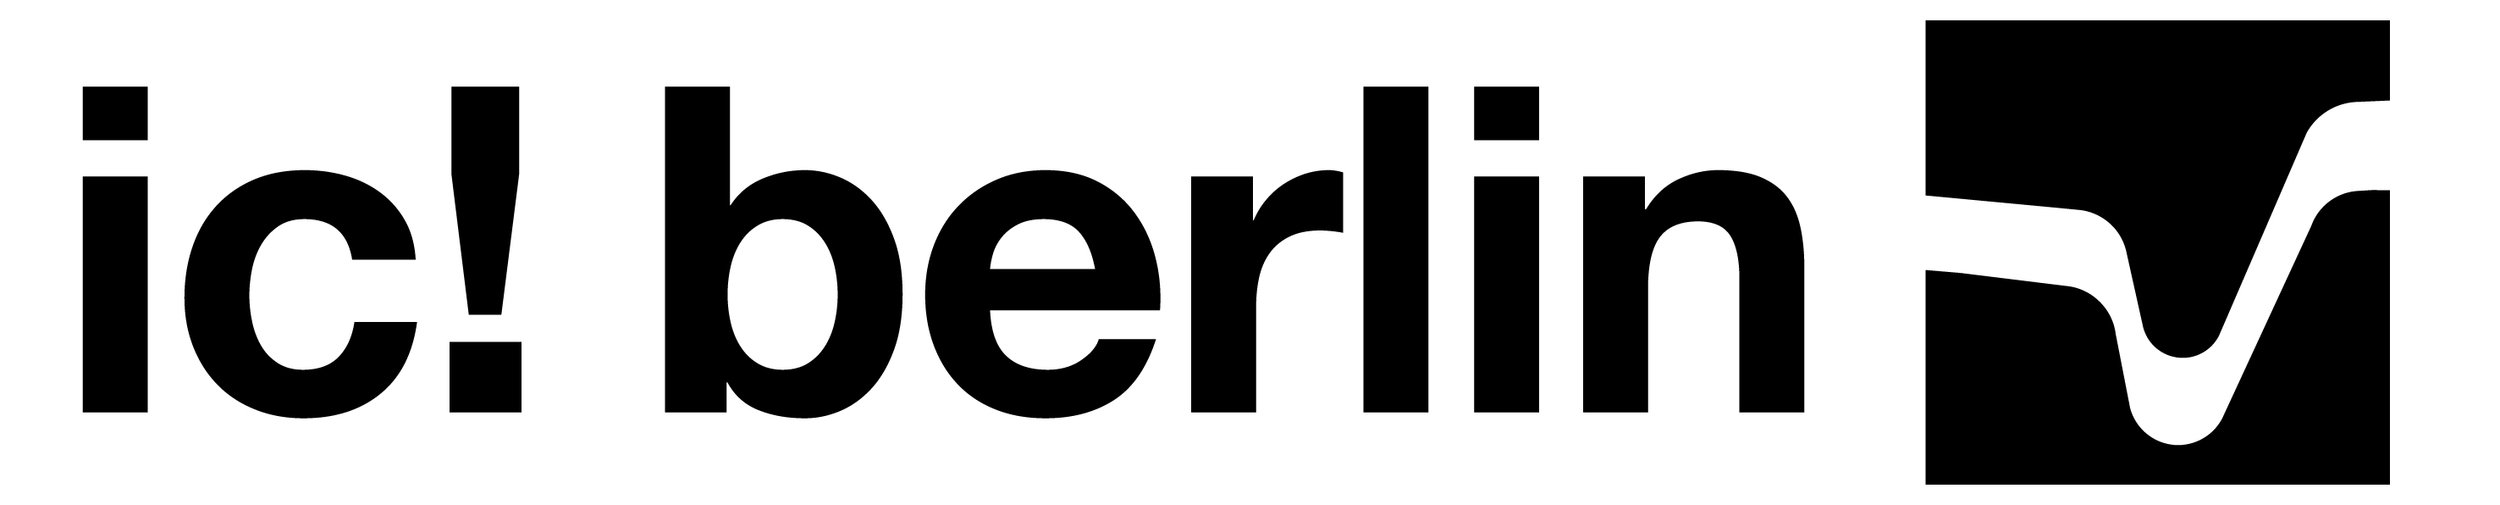 icberlin_logo_new2012.jpg